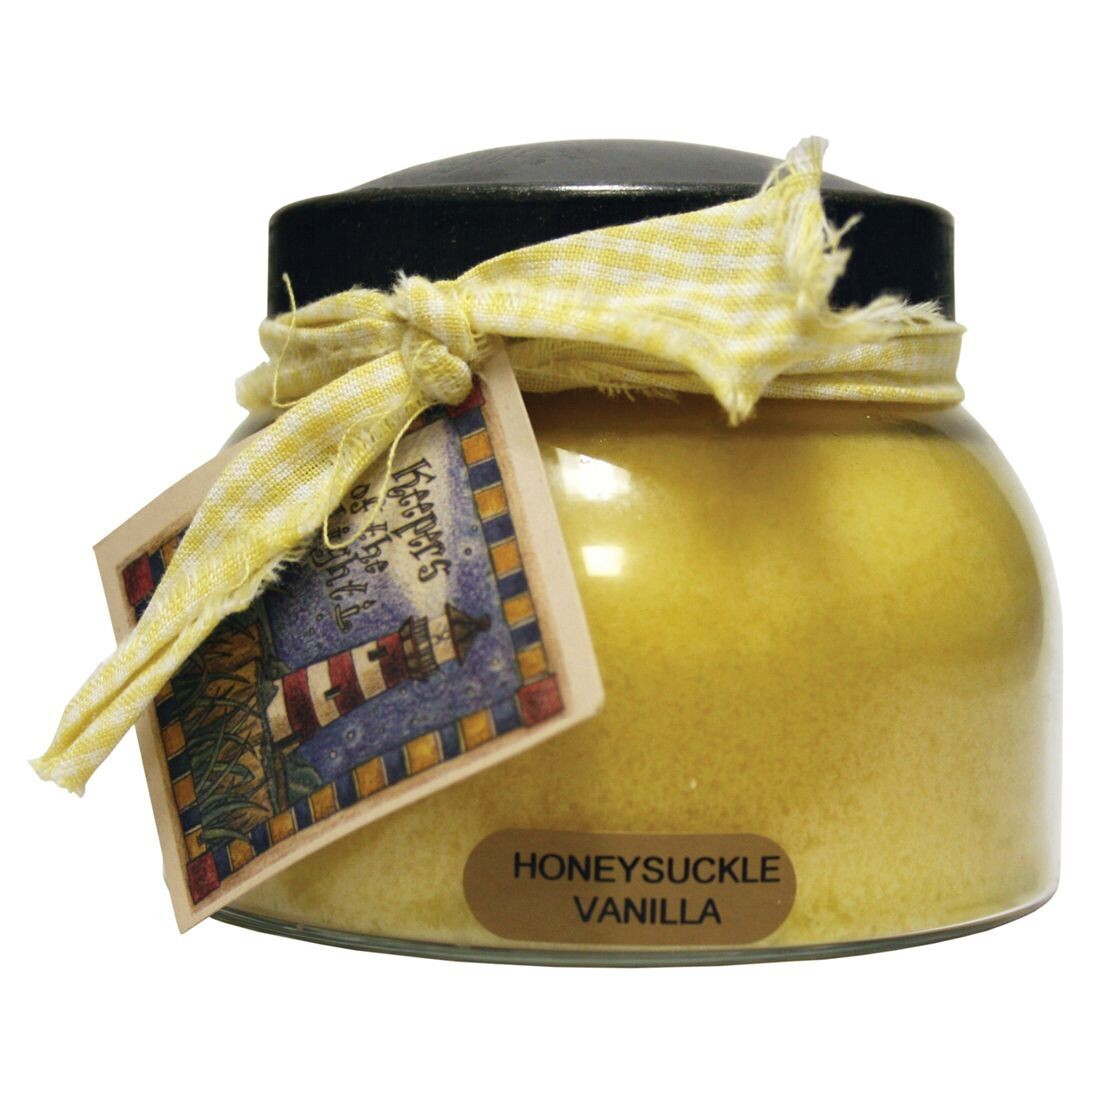 Honeysuckle Vanilla - Mama Jar - 22 oz - Double Wick - Keepers of the Light Candle